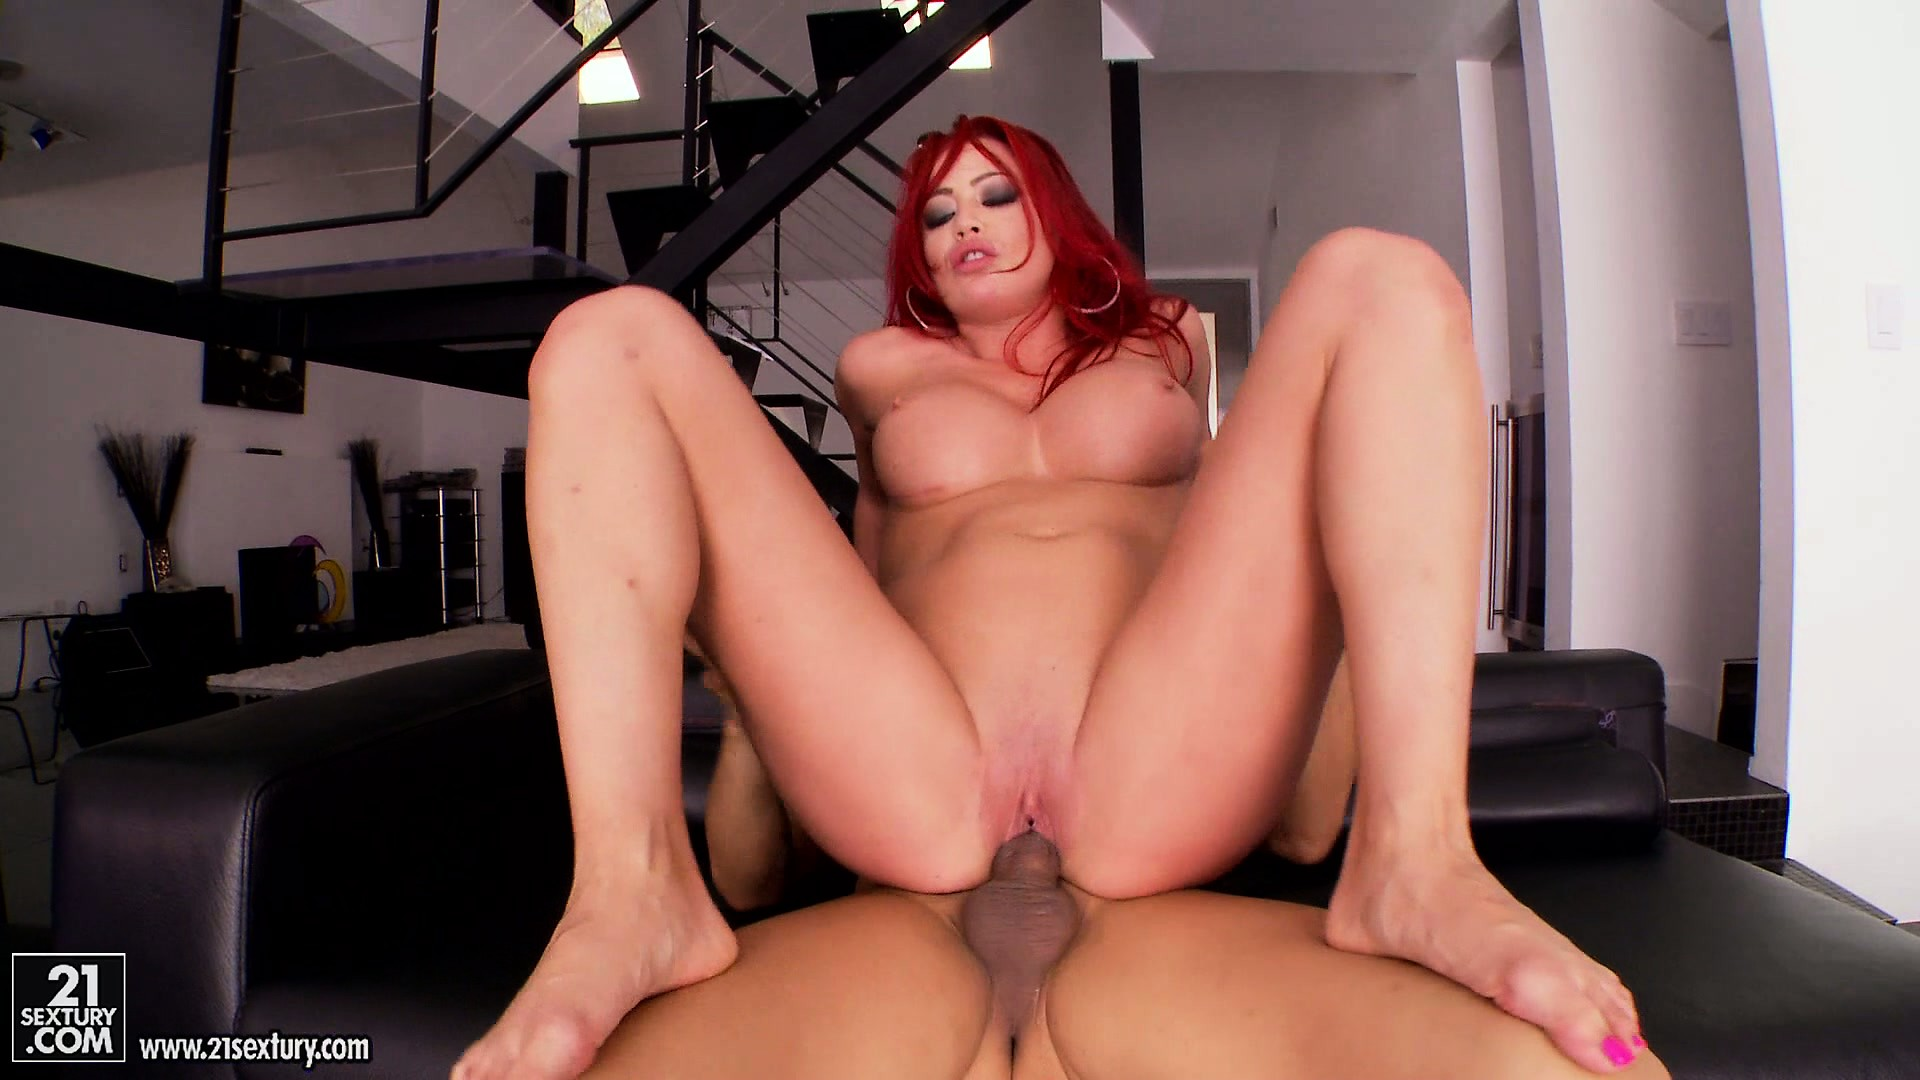 Porno Video of Redheaded Babe Gets Her Feet Worshiped While Banging Her Lover